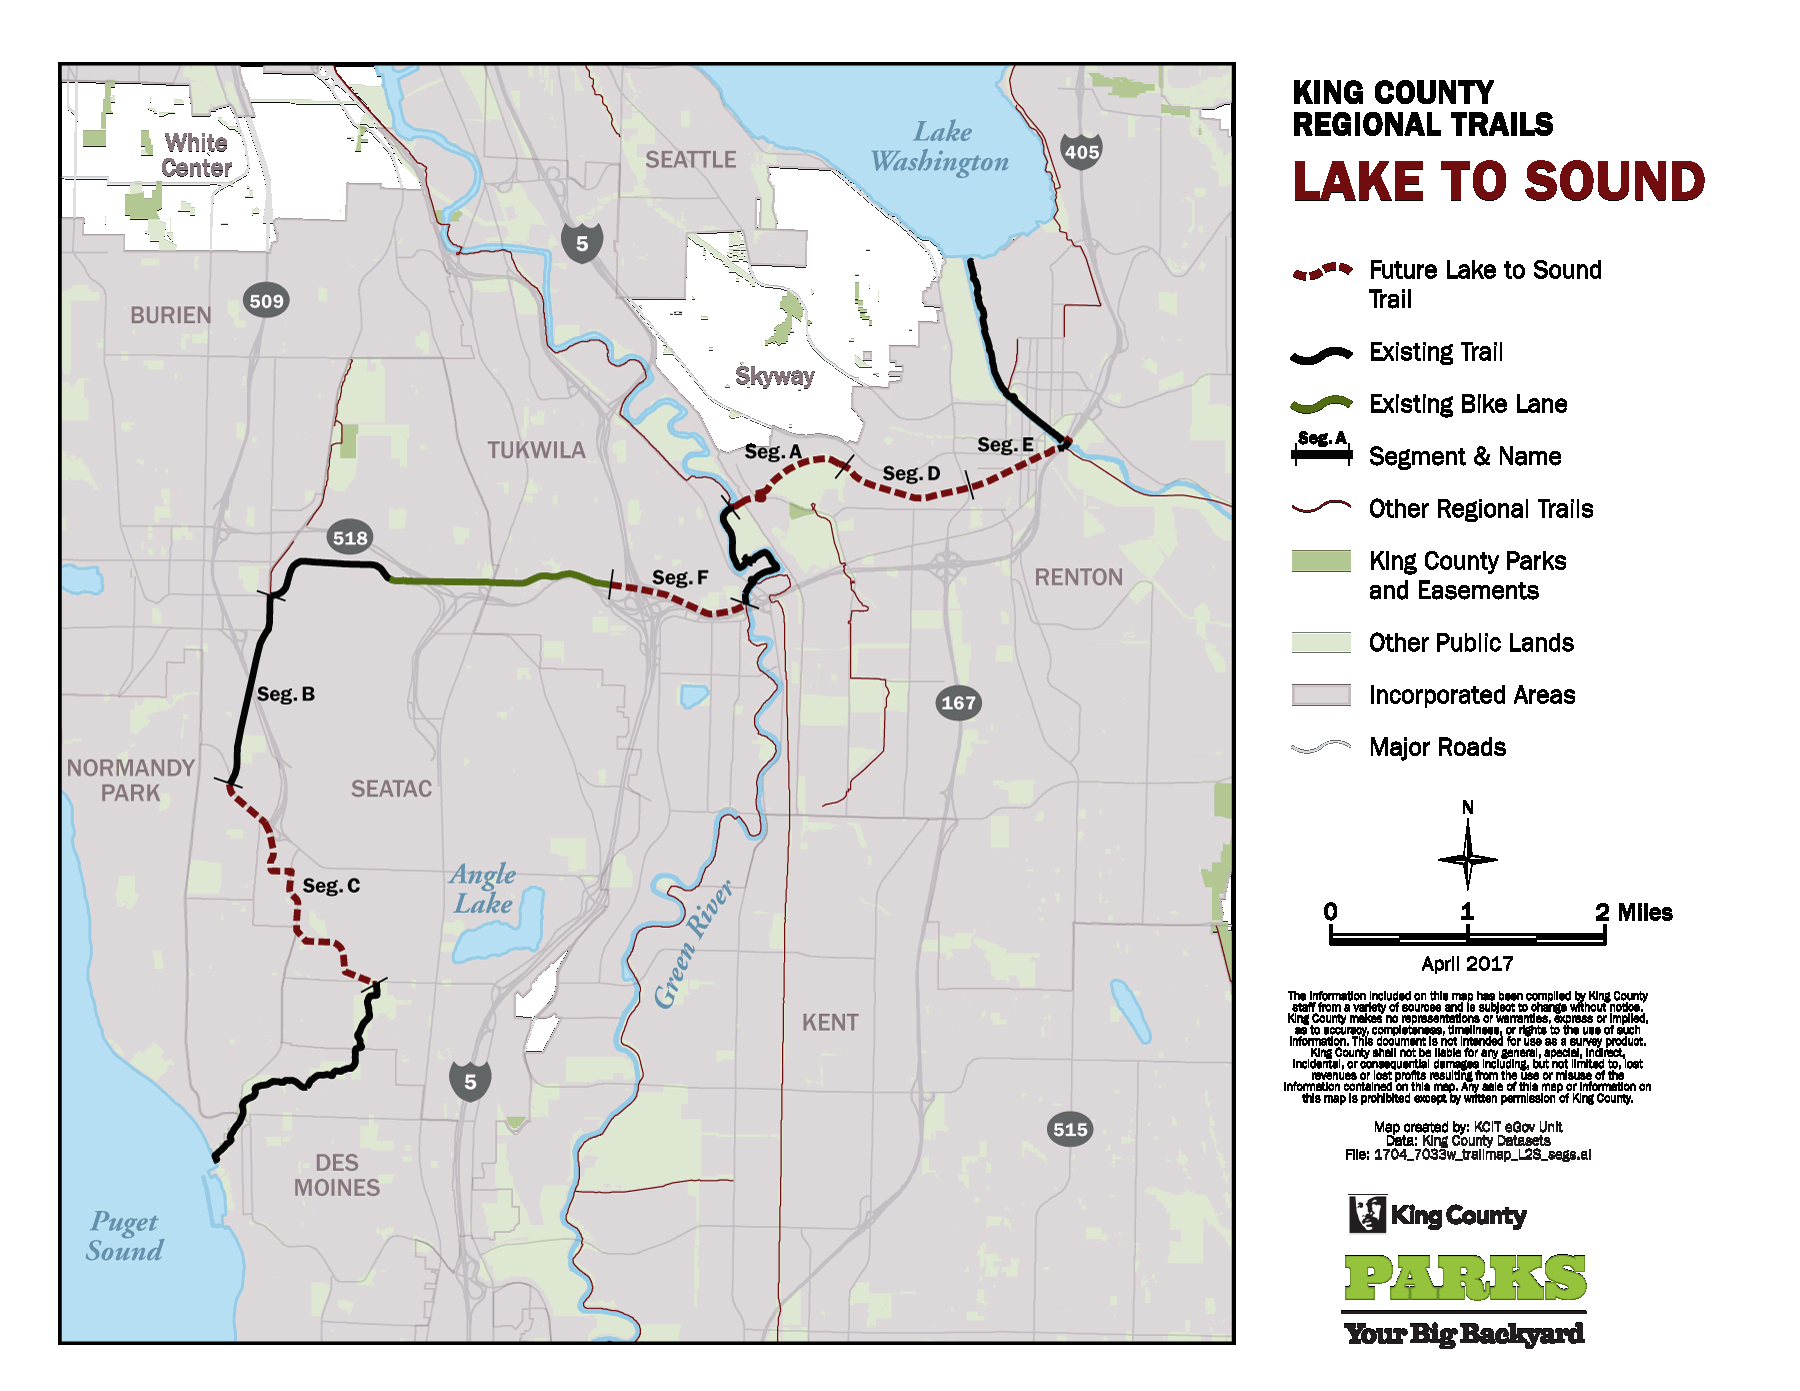 Lake to Sound Trail - King County Des Moines Bike Trails Map on